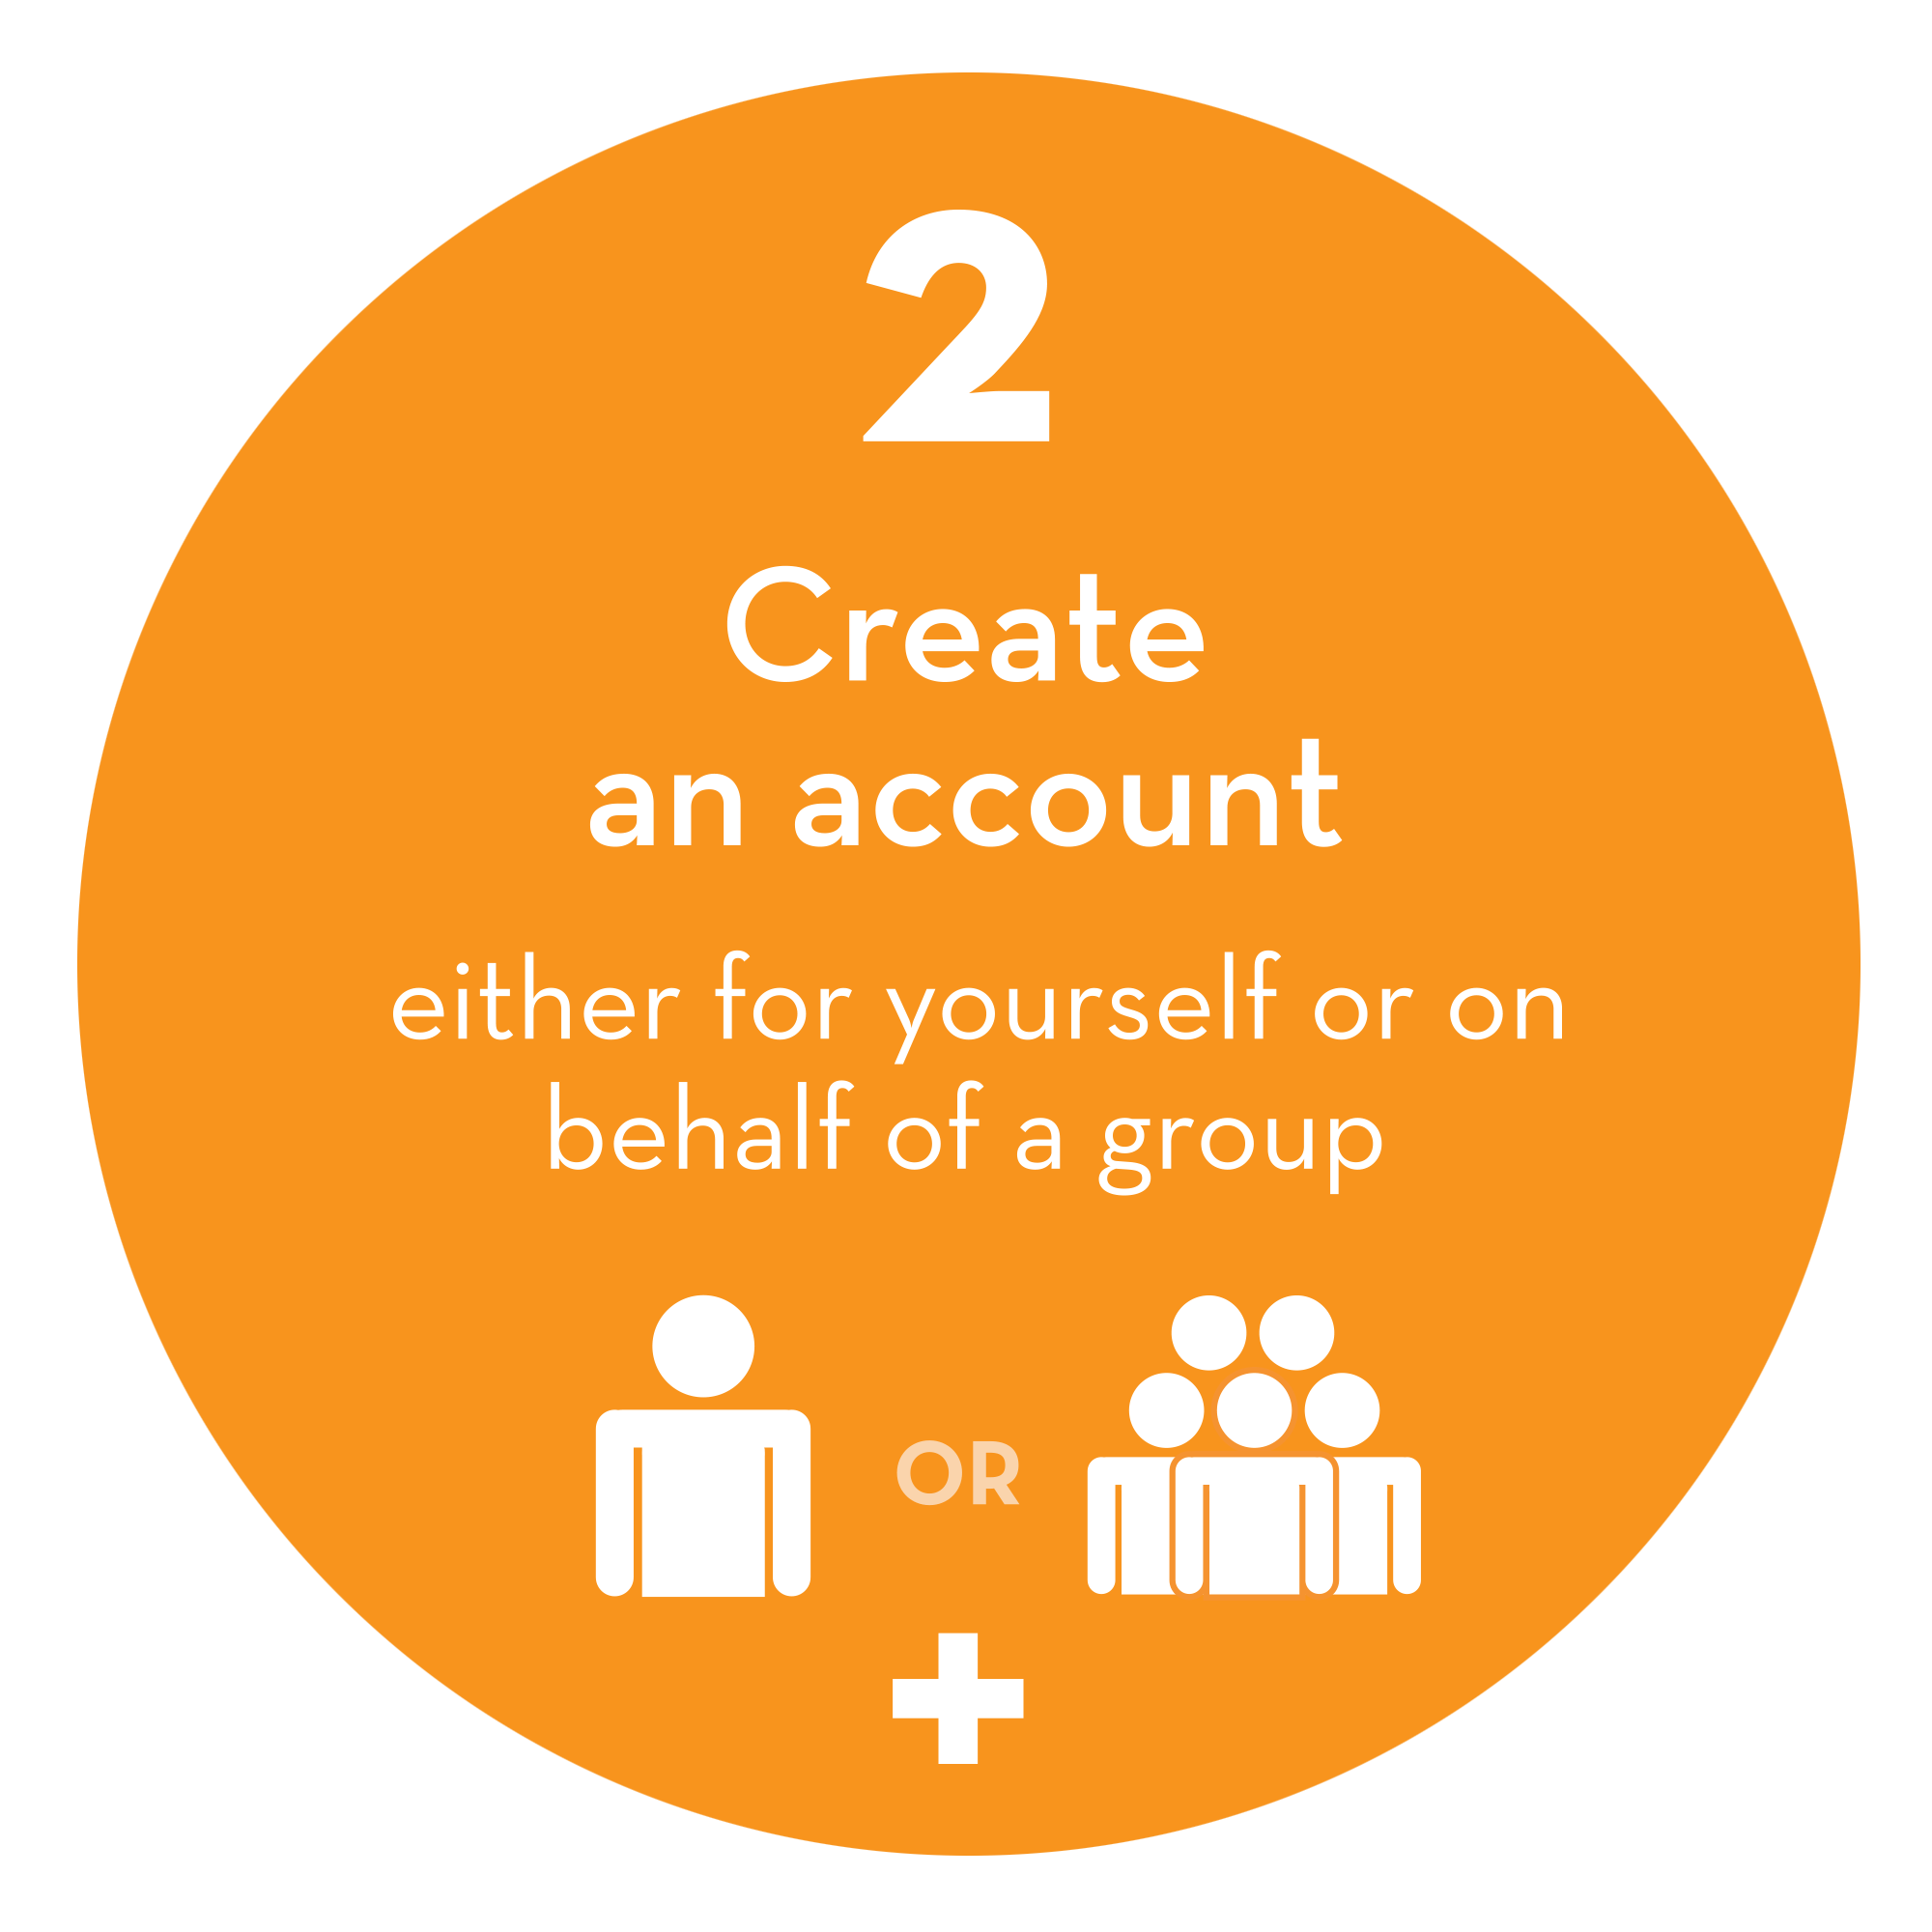 Step 2: Create an account